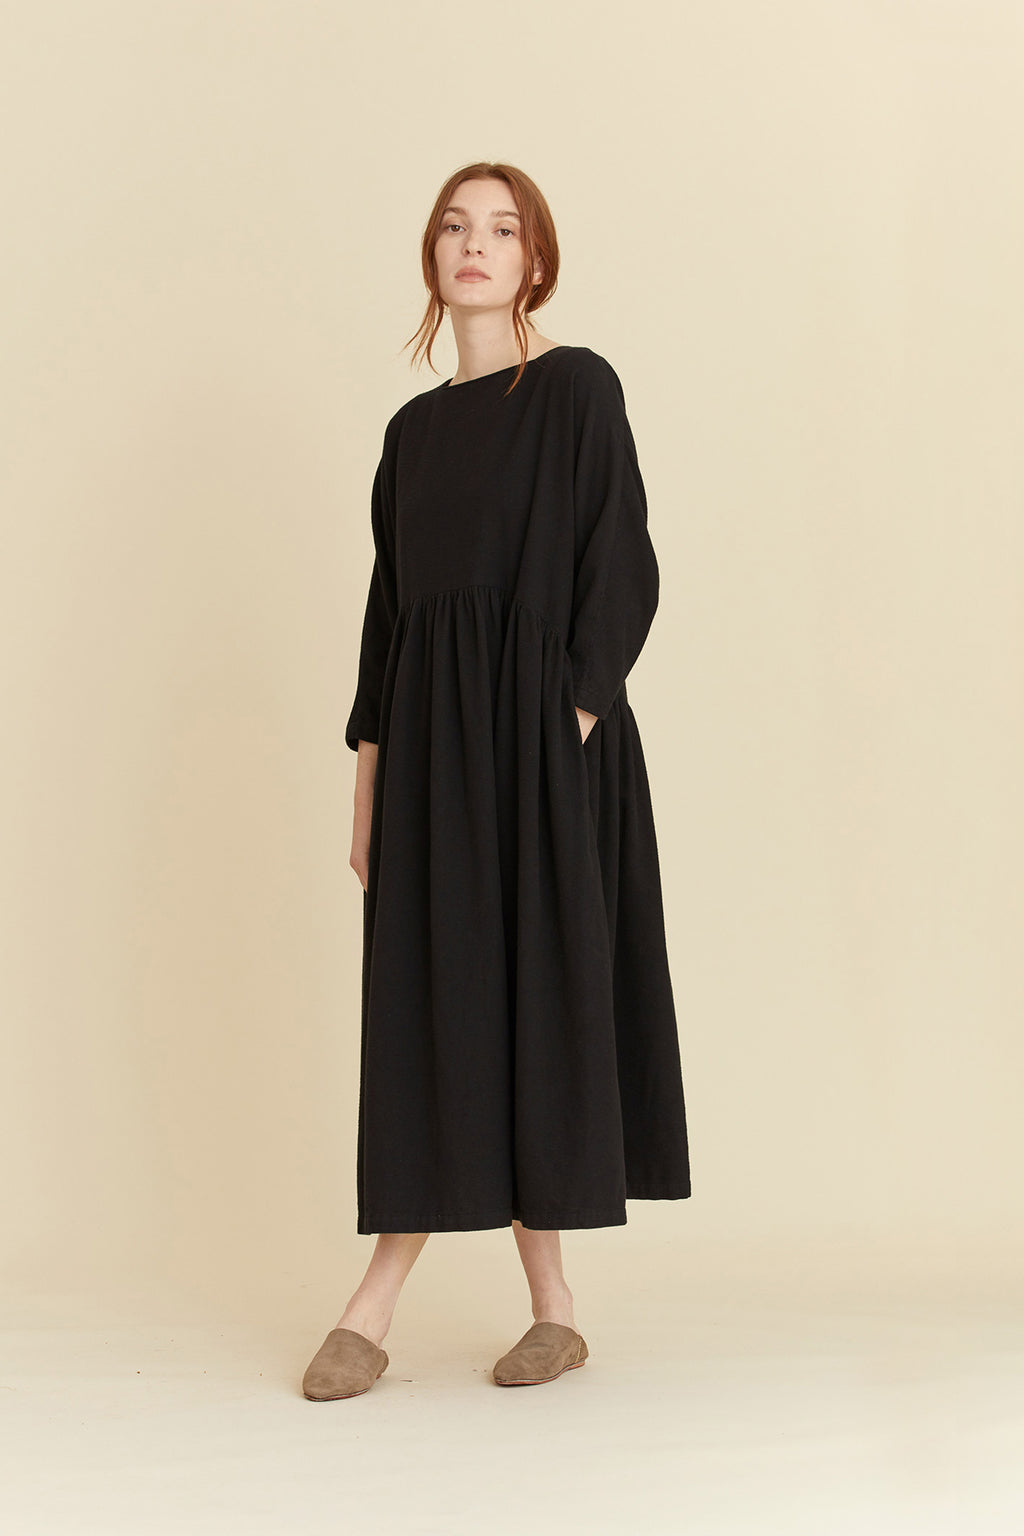 TRADI DRESS / HF-TRD01 / BLACK